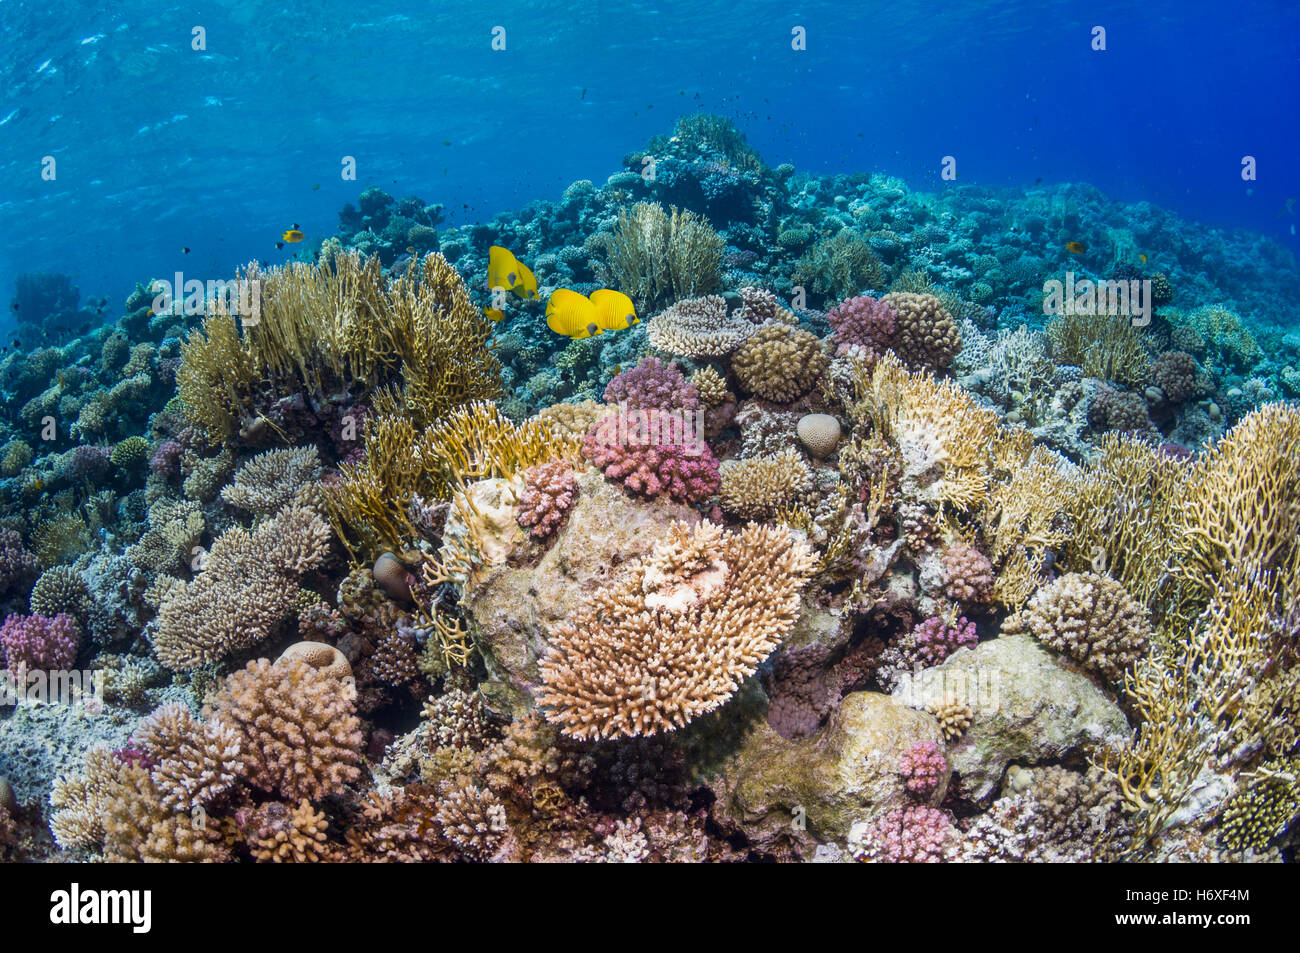 Top of coral reef with Golden butterflyfish [Chaetodon semilarvatus].  Egypt, Red Sea. - Stock Image